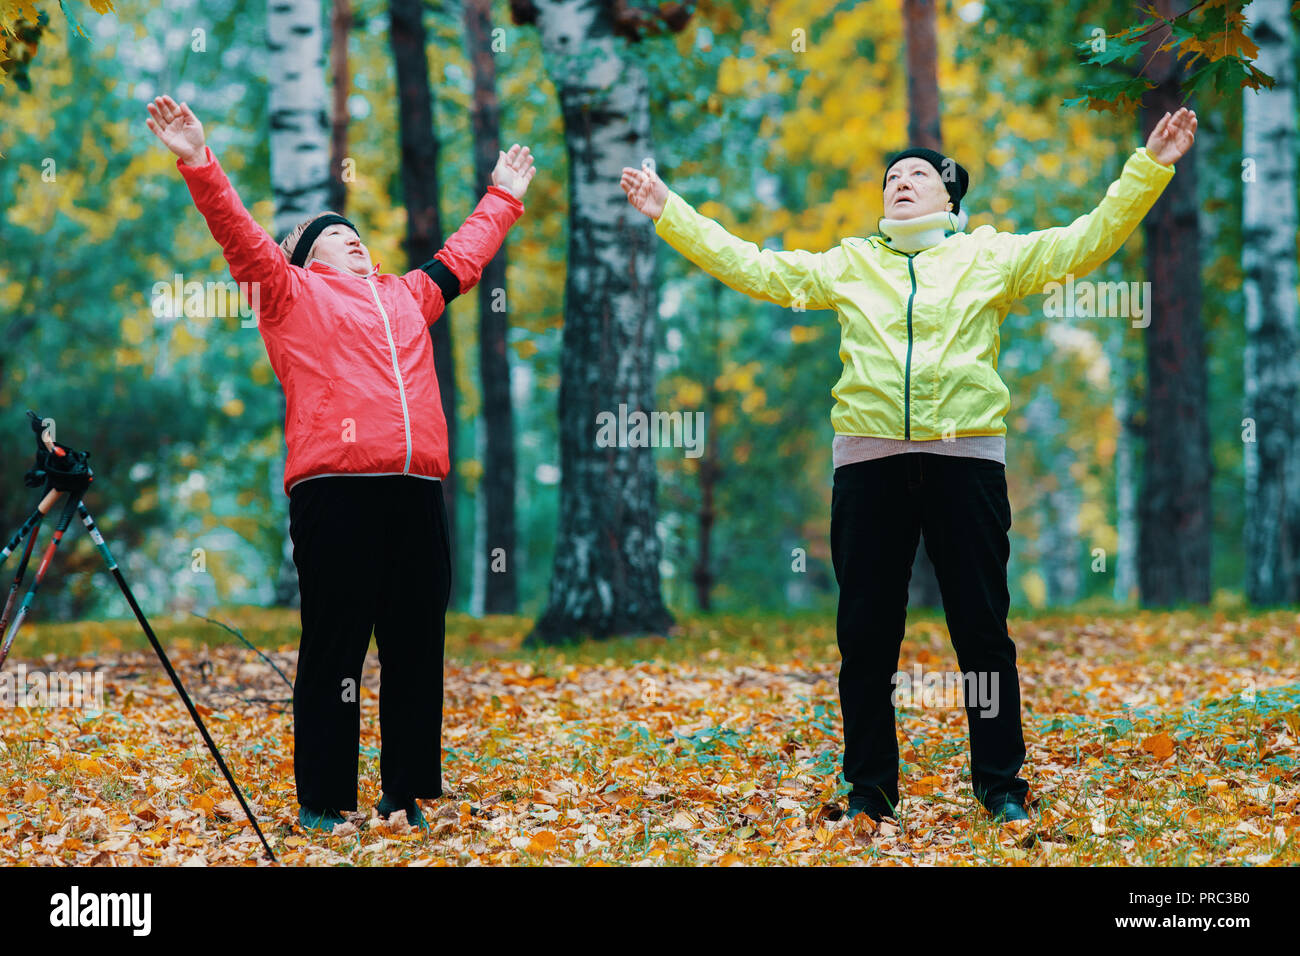 Mature woman doing gymnastics in an autumn park after a scandinavian walk - Stock Image